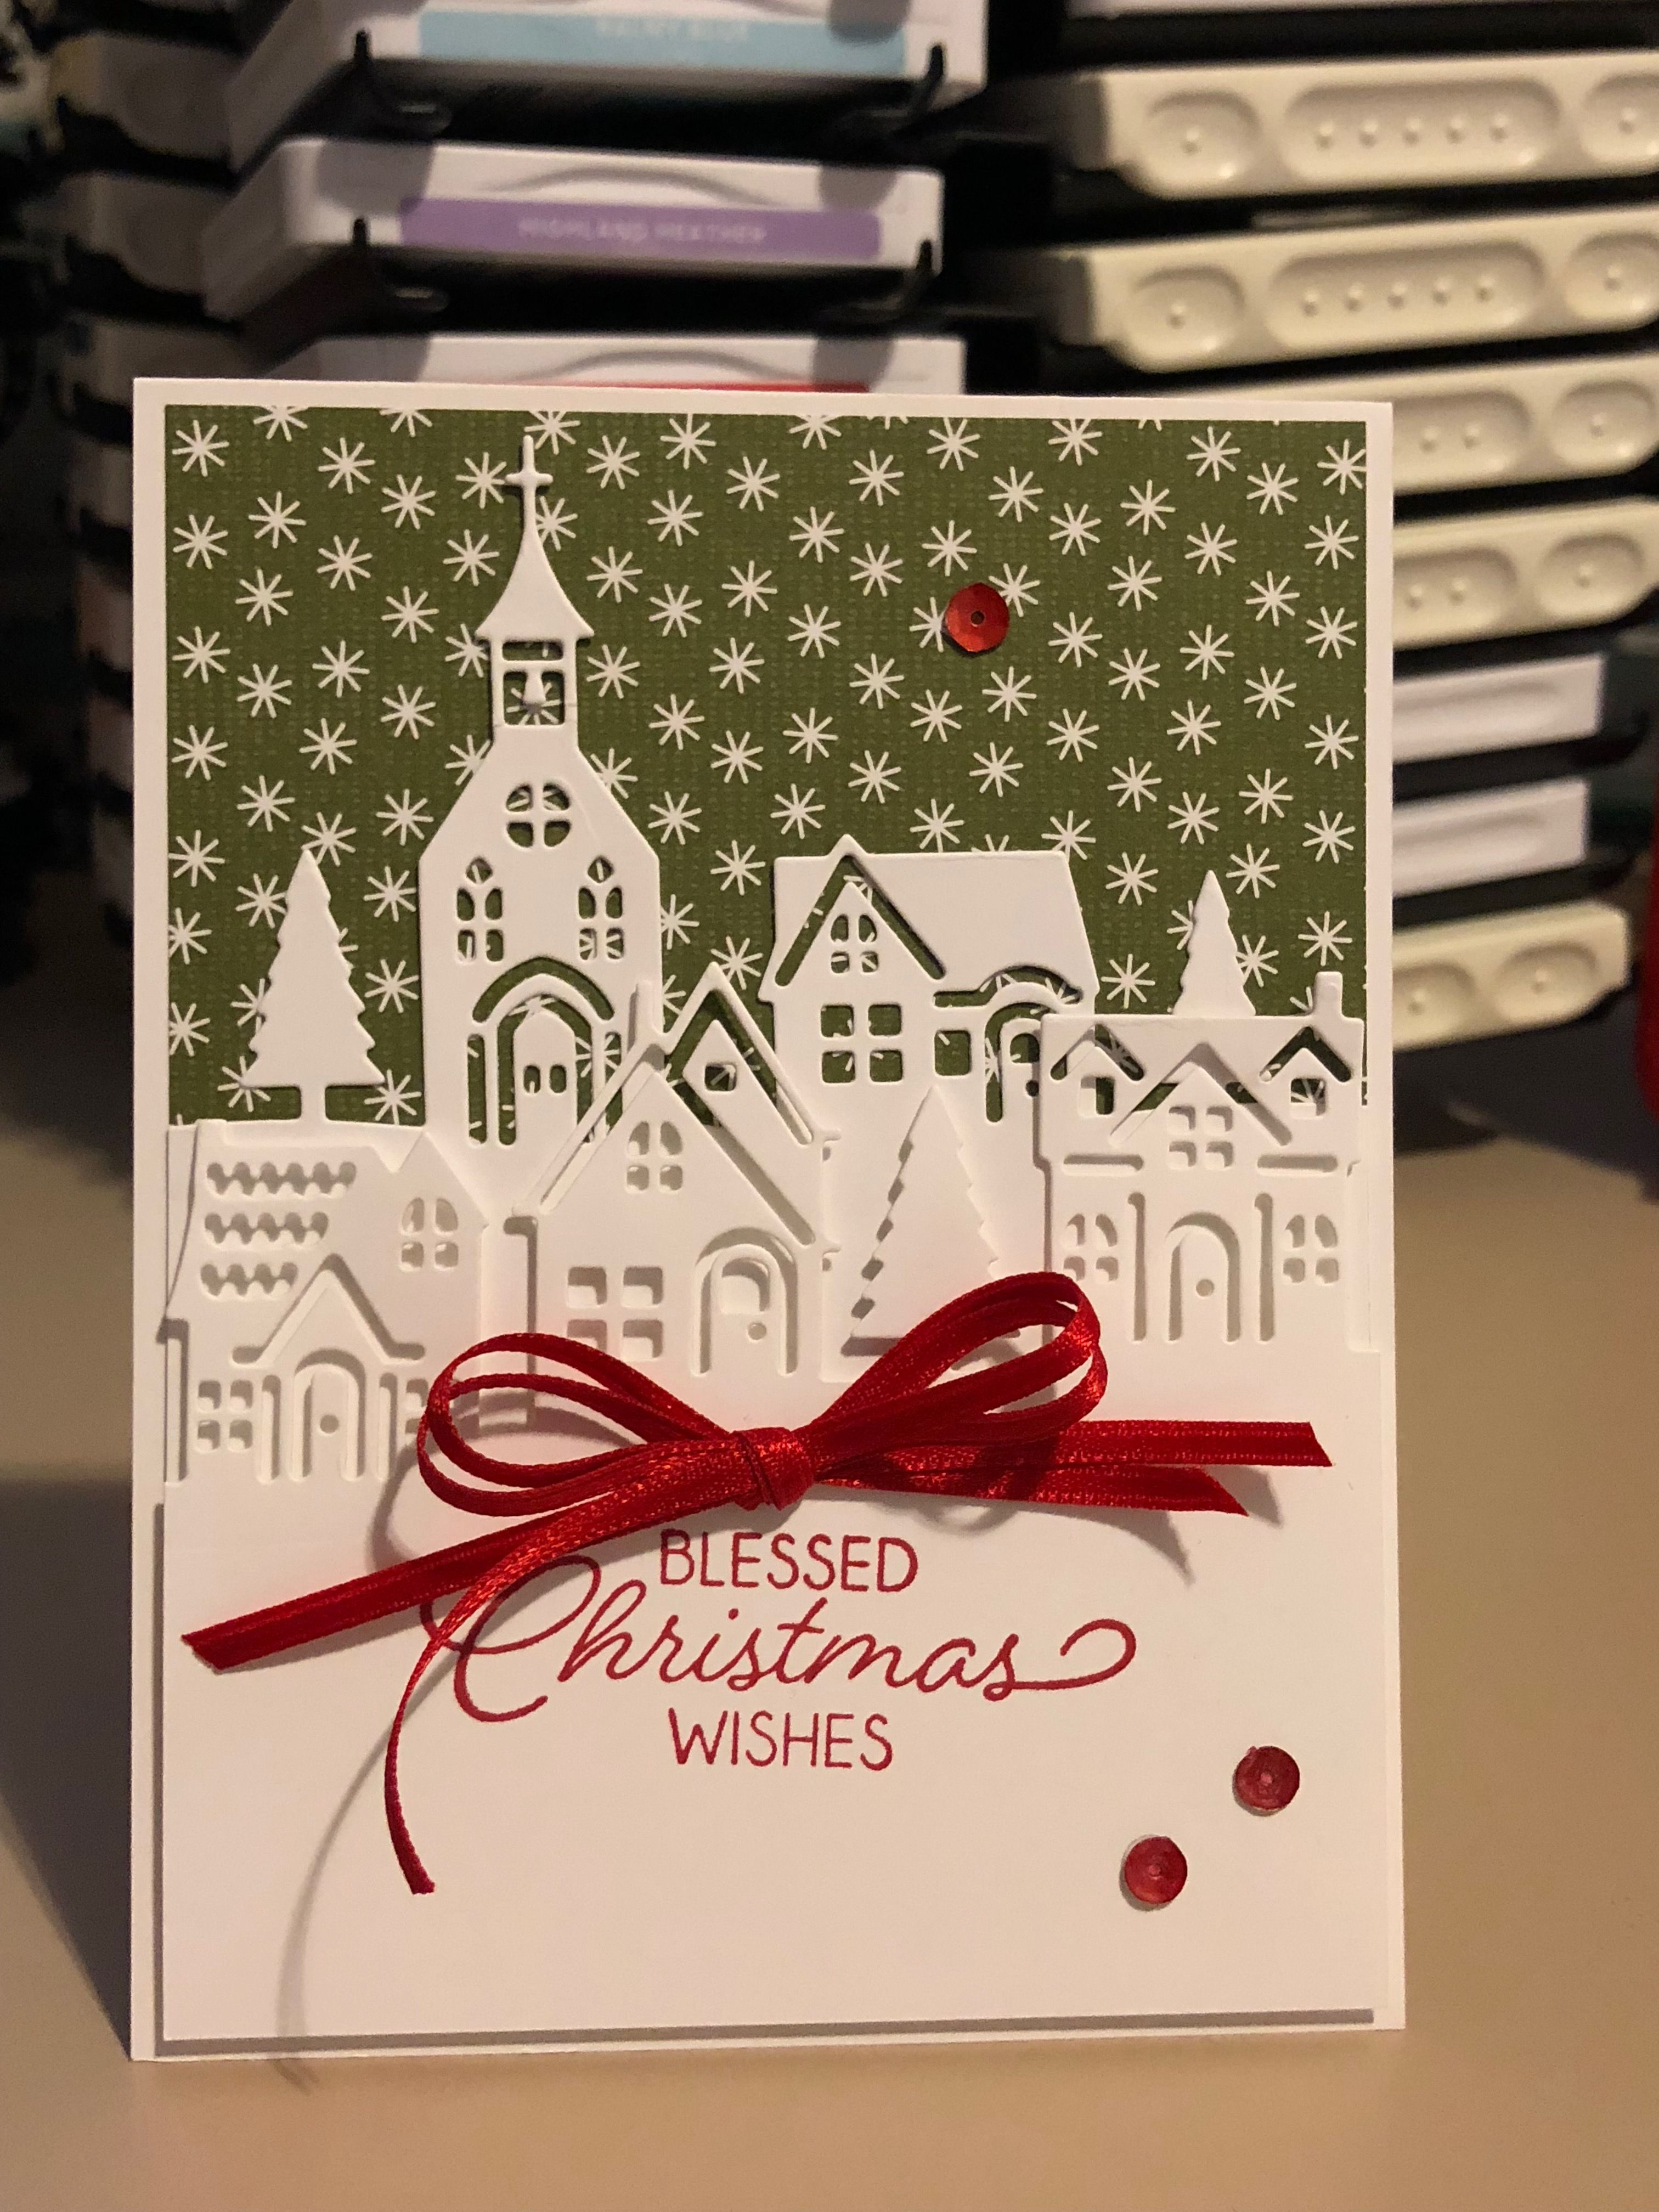 Pin by Robin Martin on Christmas Cards | Pinterest | Christmas Cards ...